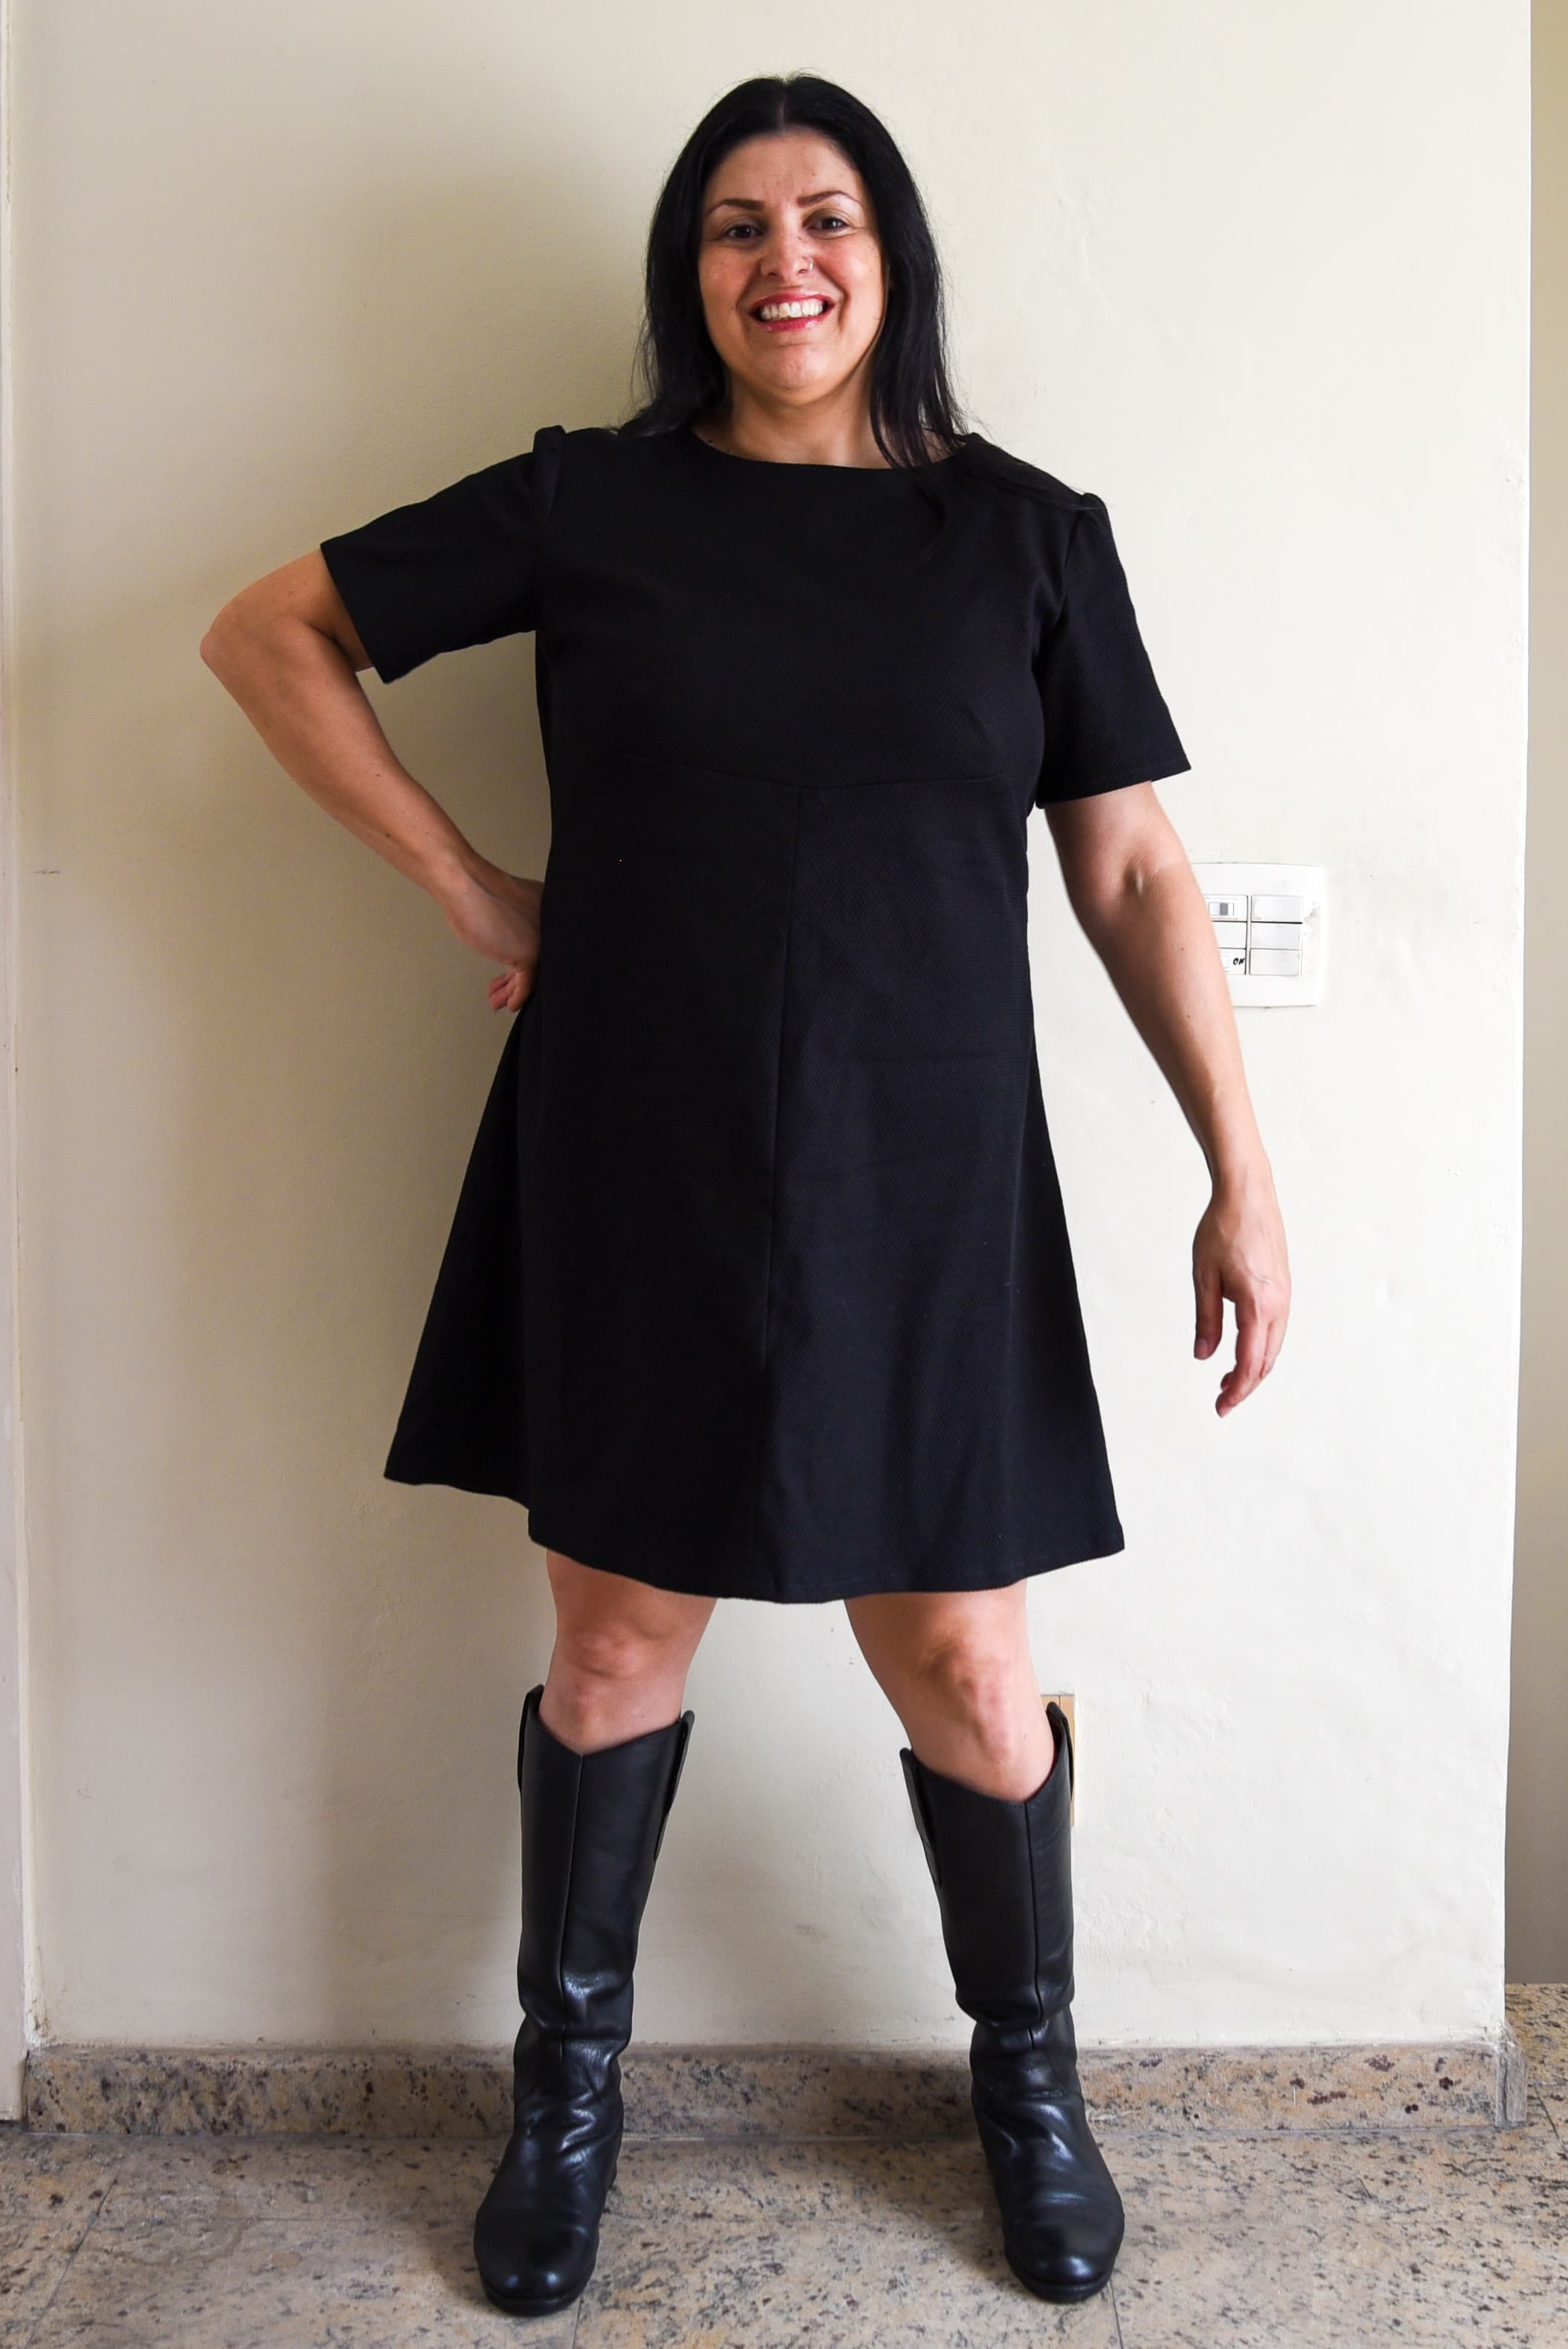 Image of Paula standing in front of a wall, facing the camera, wearing Simplicity 3833, an A-line dress in black pique cotton and boots